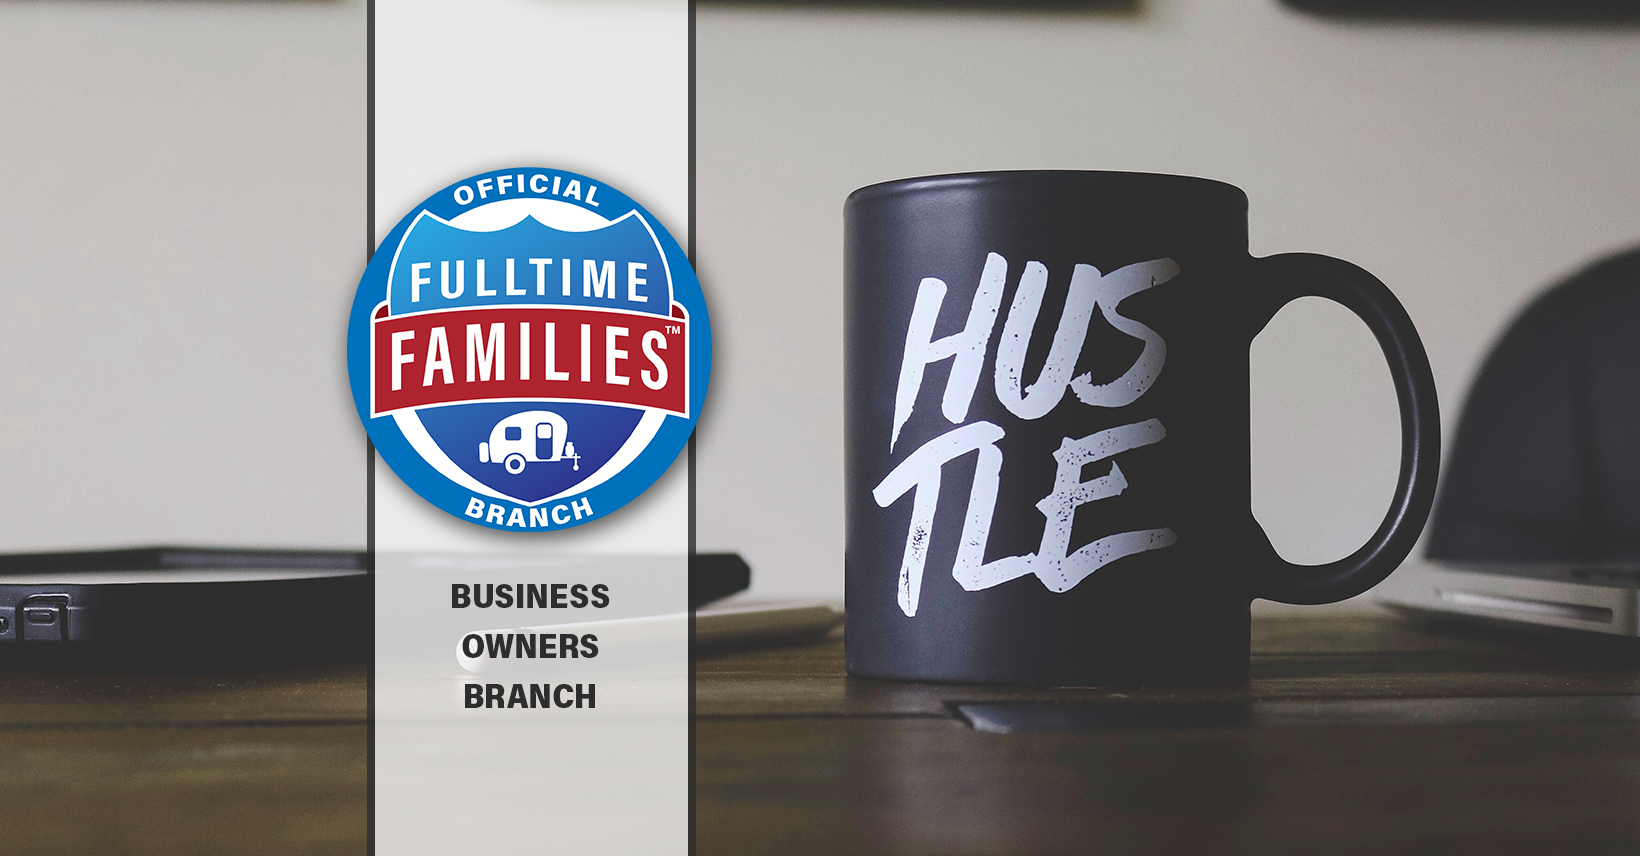 Fulltime Families Branches - Fulltime Families